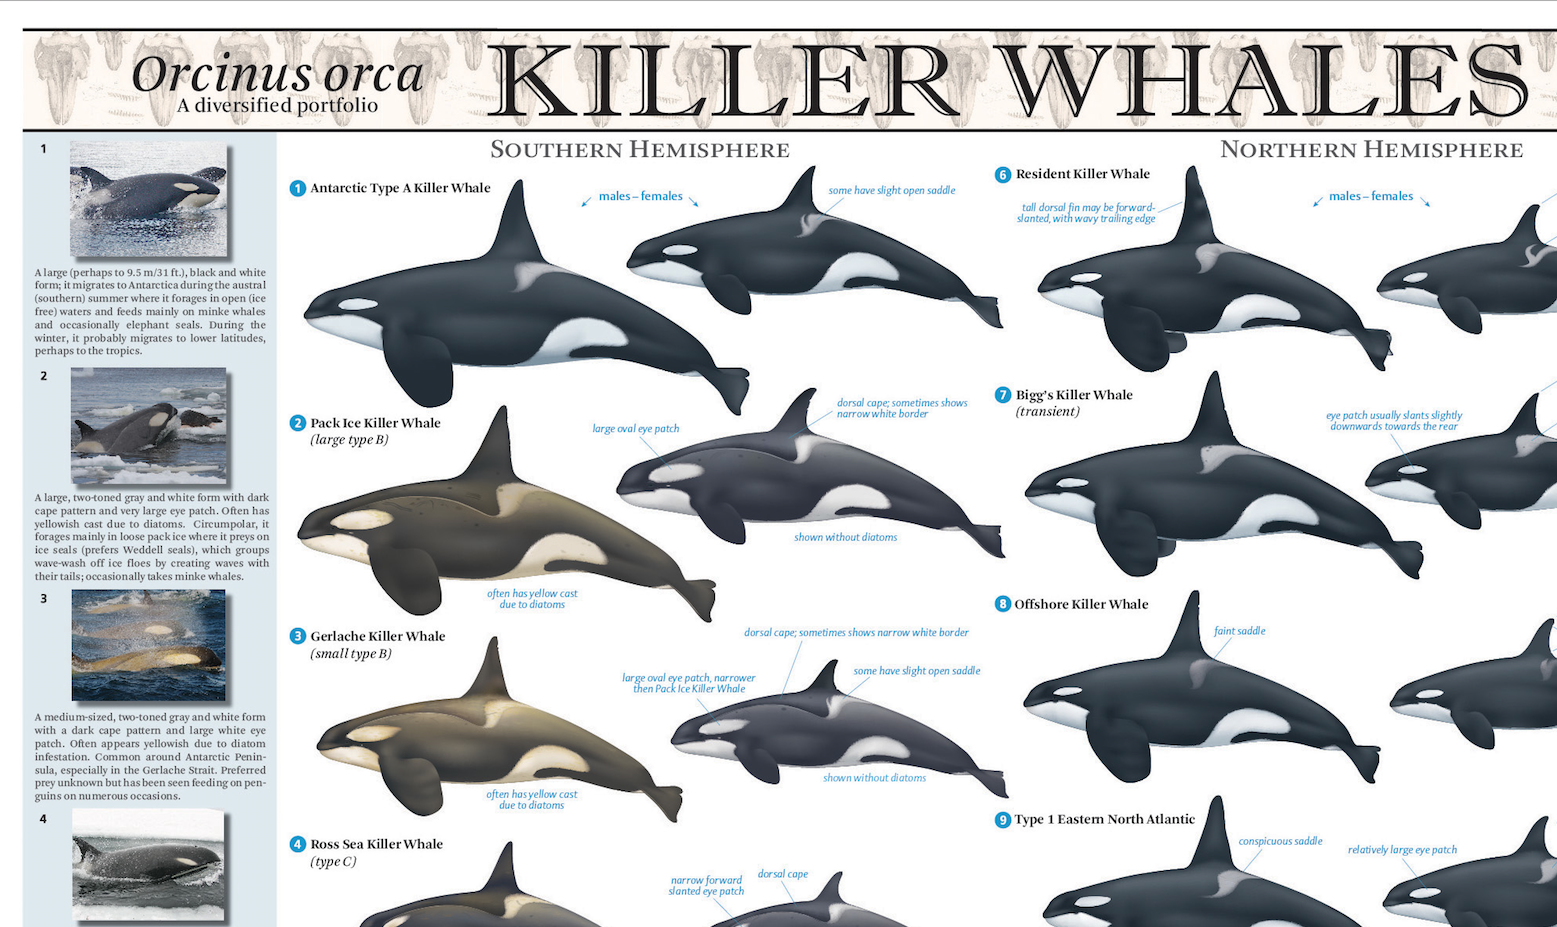 Why are there so many different types of killer whales?\